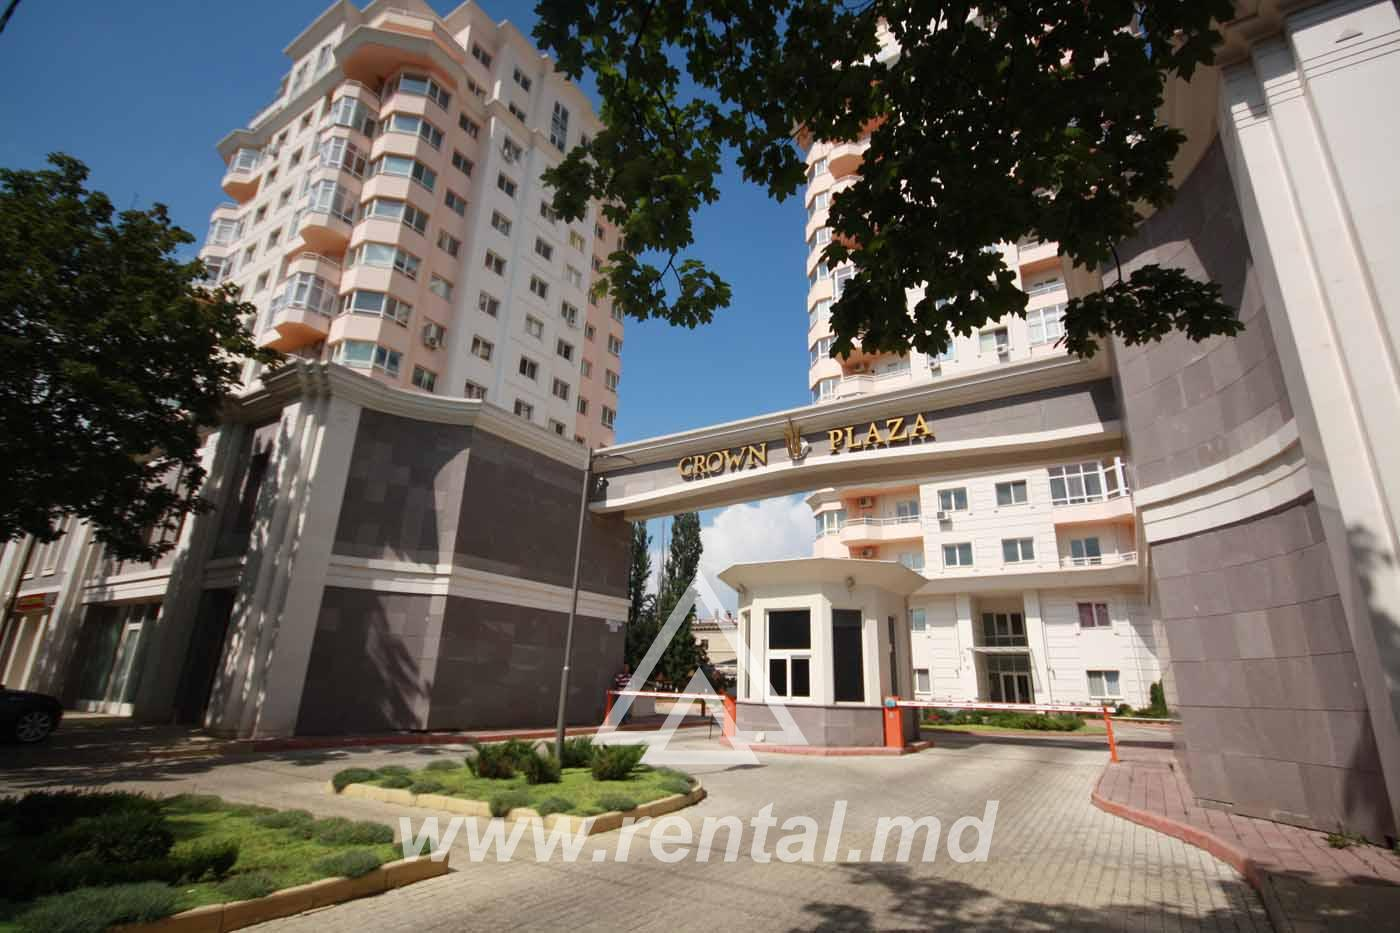 Rental 3 rooms apartment in Crown Plaza